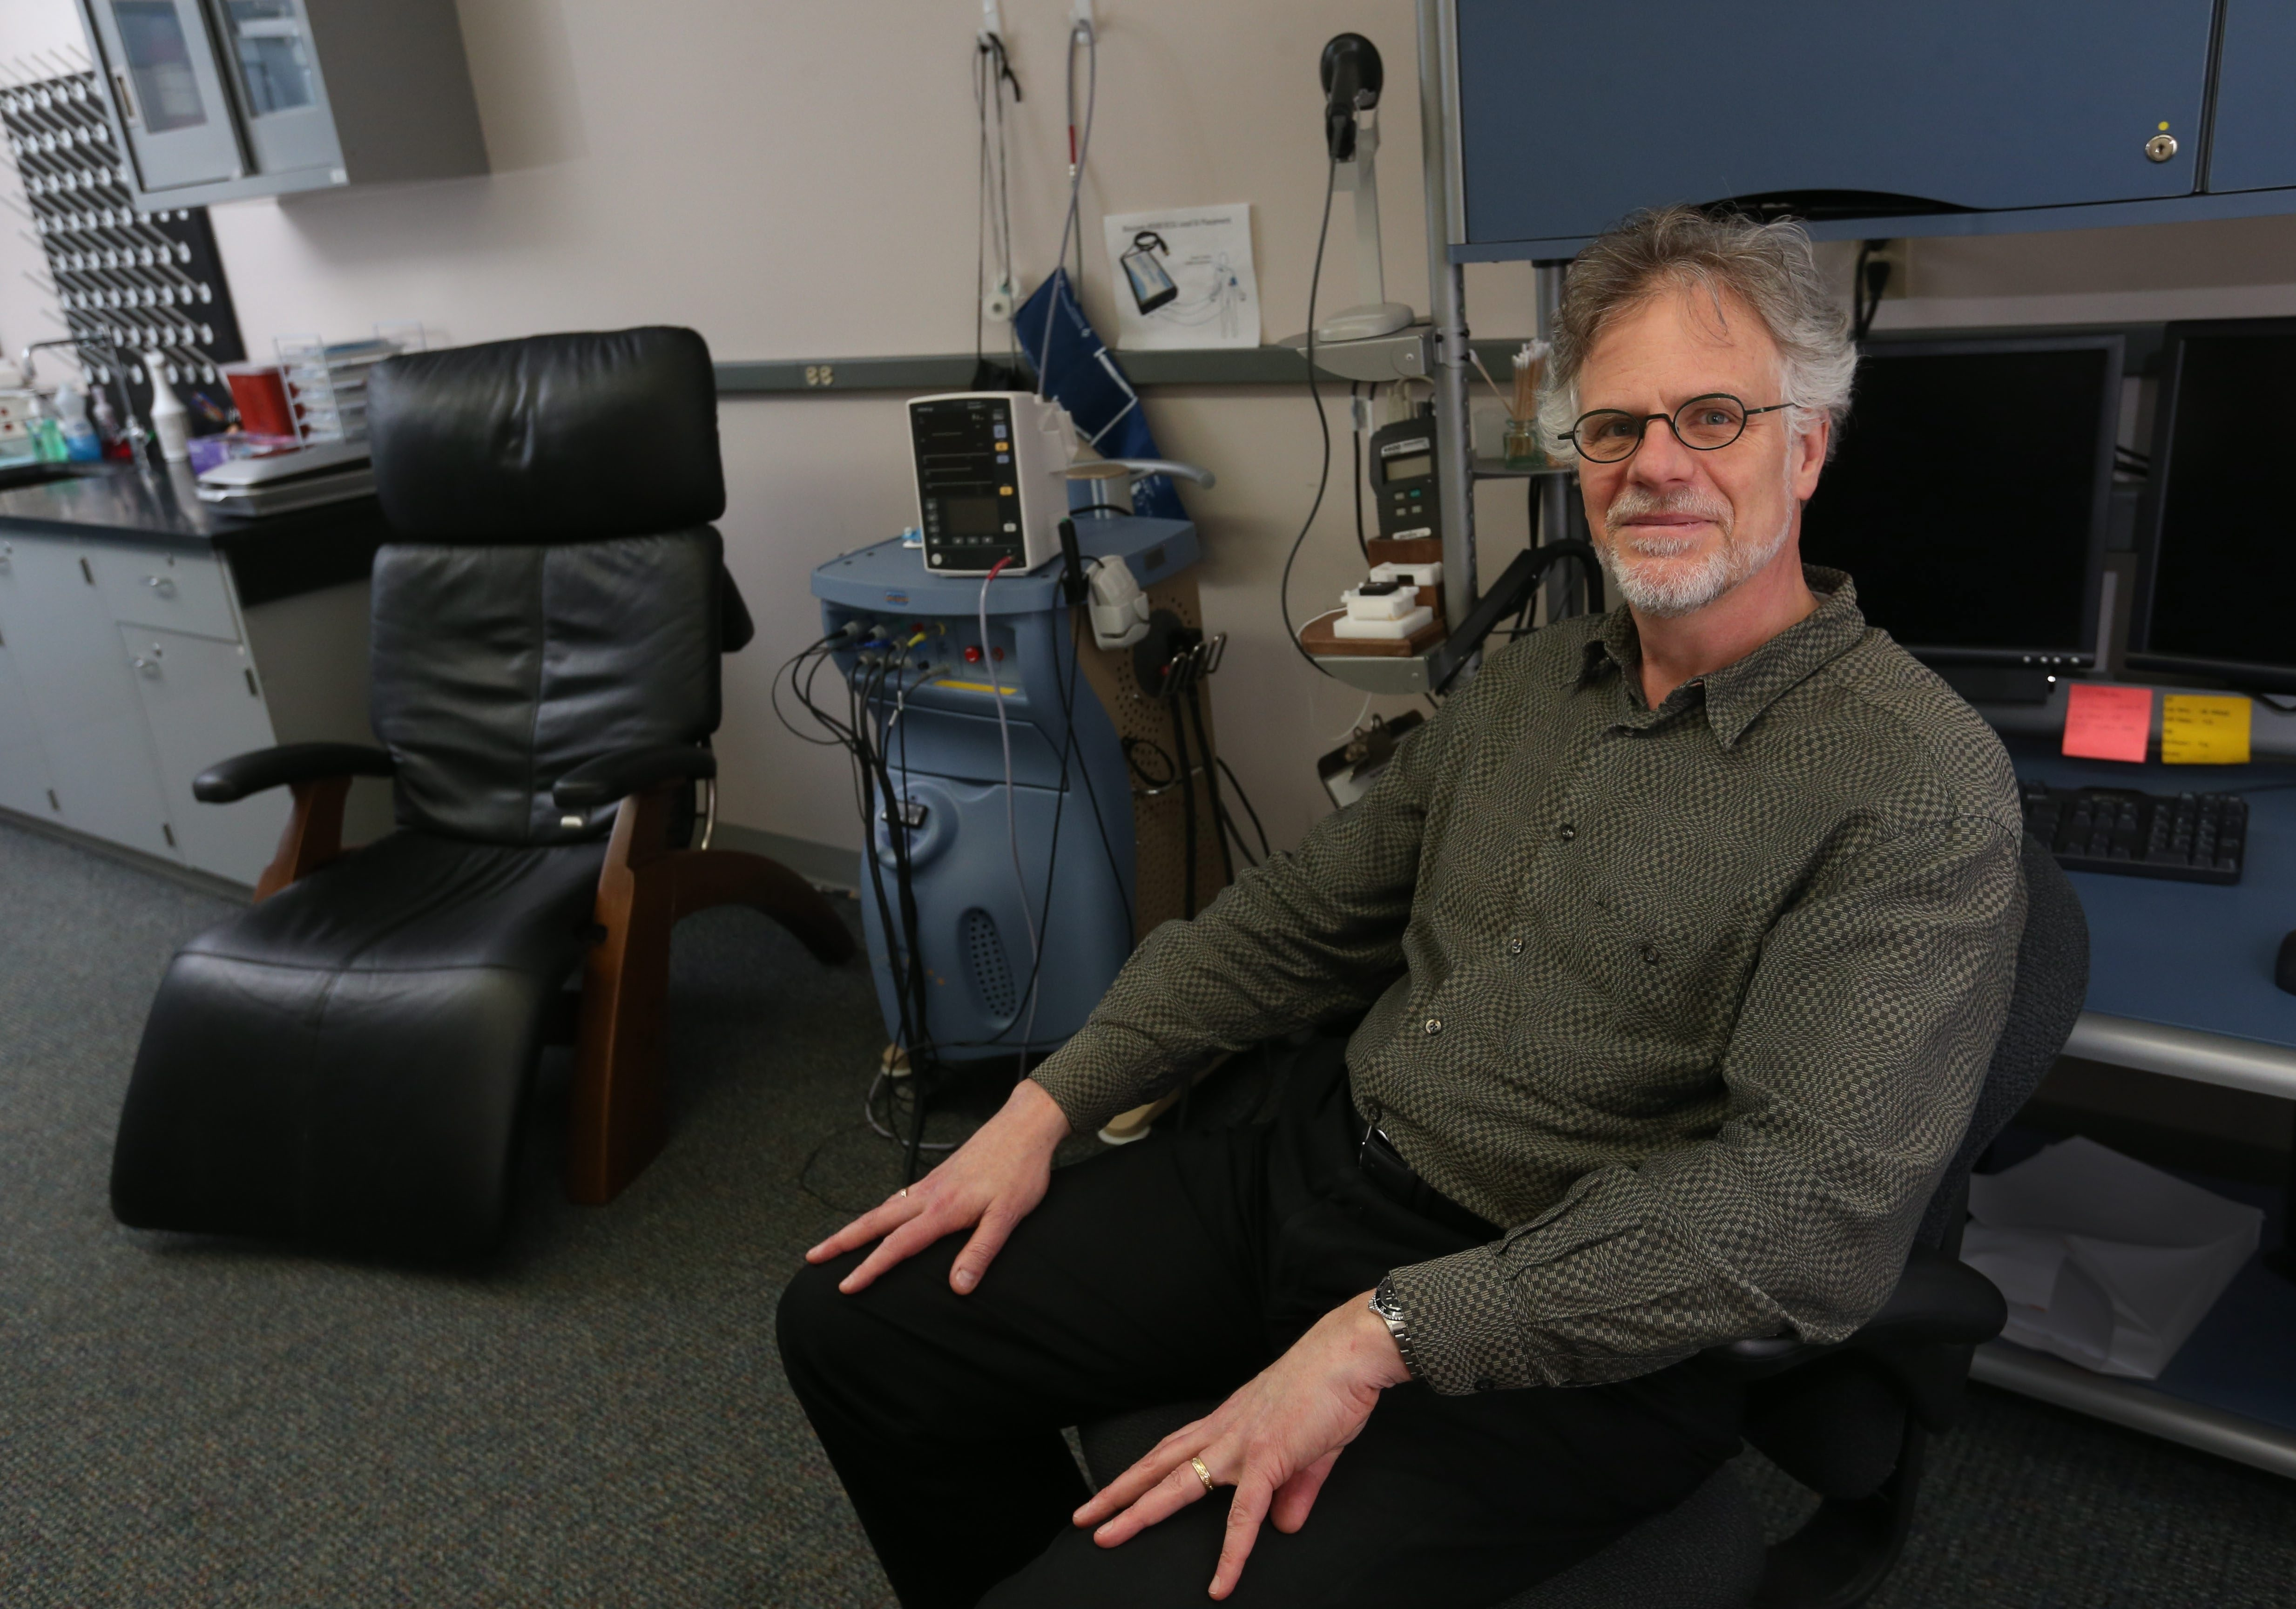 """Pain can be a symptom of disease. Pain also can be the primary disorder."" – Dr. Richard Ohrbach, associate professor, and director of the University at Buffalo Center for Orofacial Pain Research, which includes a neurosensory lab to assess how a research subject's pain system responds."